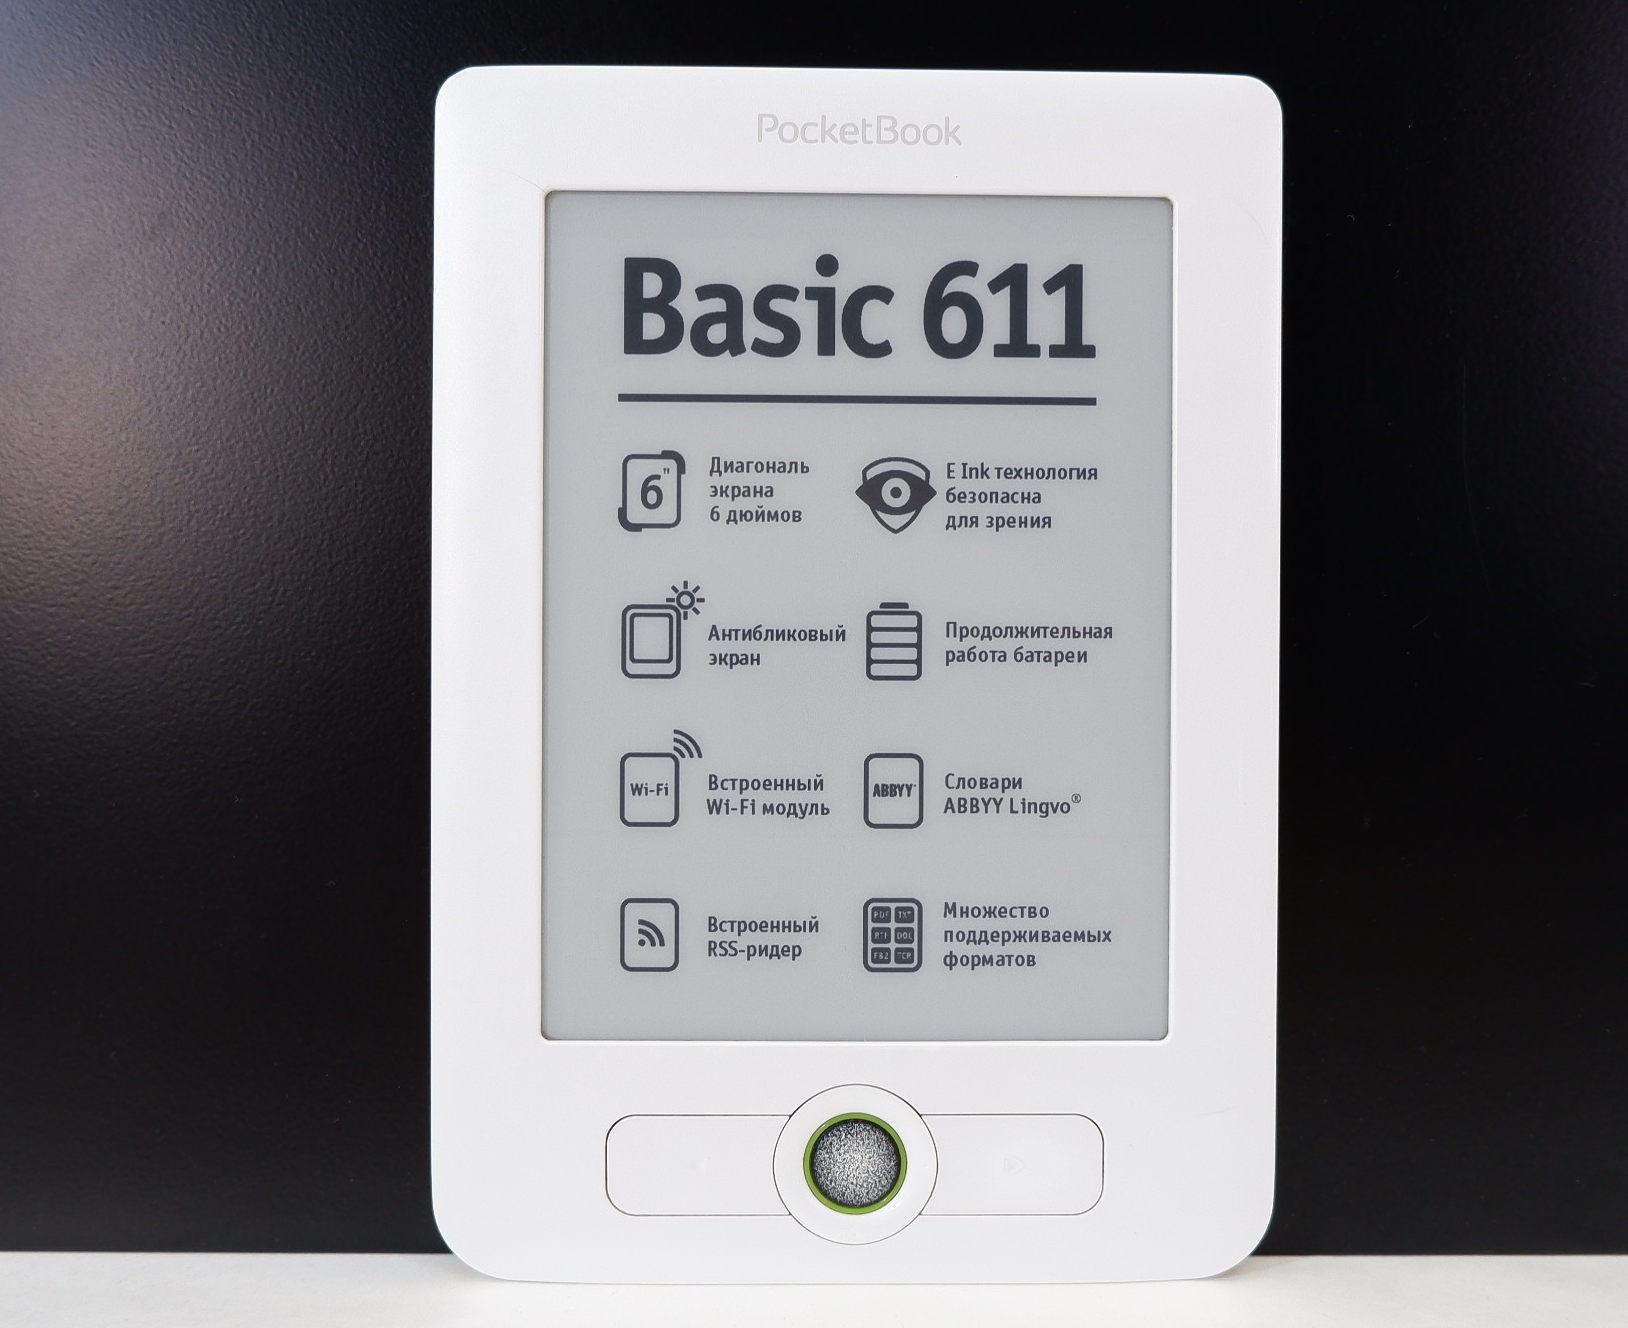 Электронная книга PocketBook Basic 611 - Pic n 291259